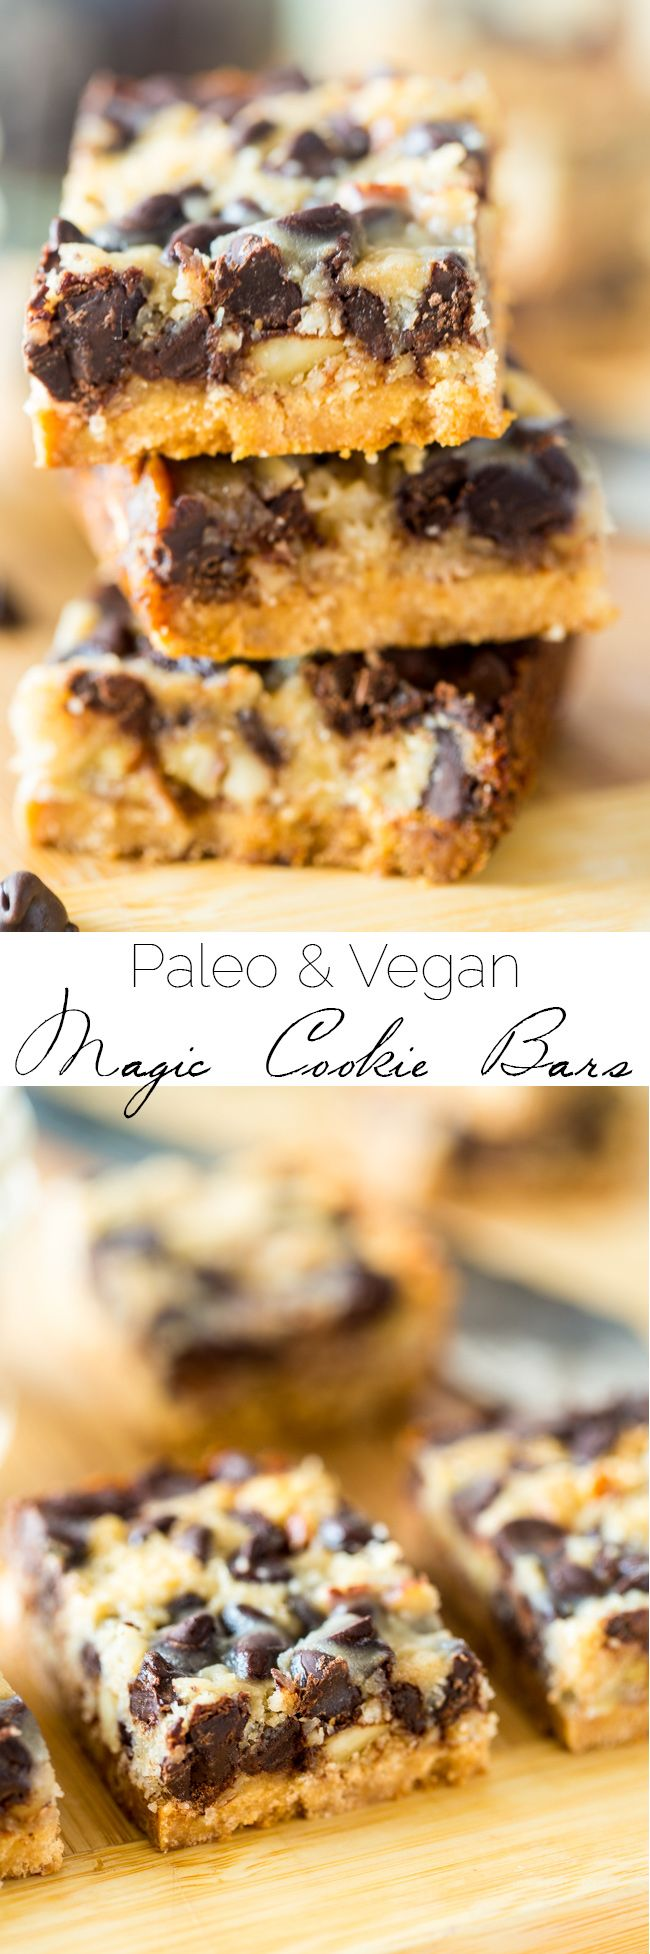 Paleo & Vegan Magic Cookie Bars   #justeatrealfood #foodfaithfitness